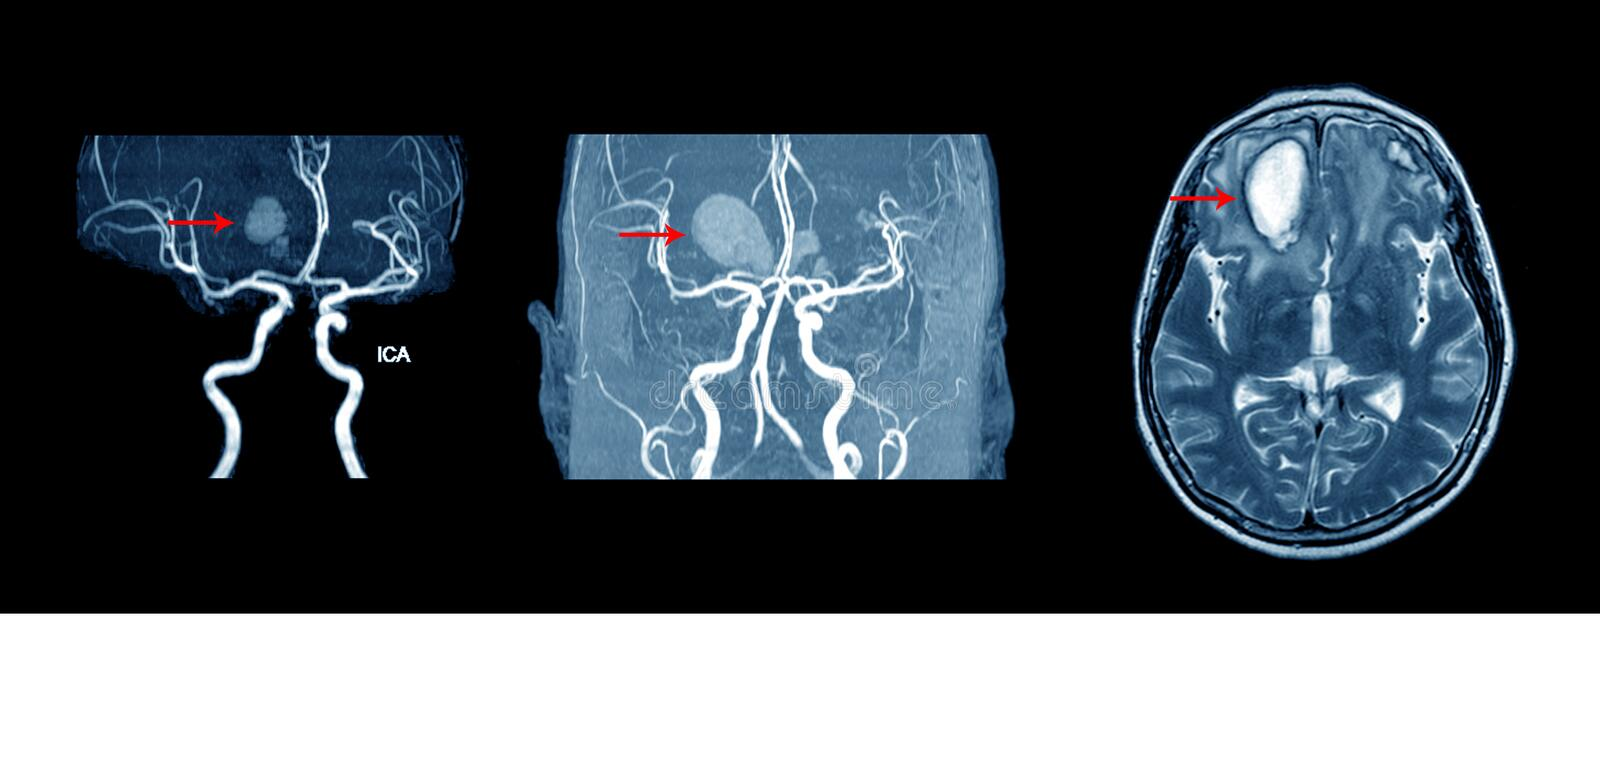 MRA AND MRV OF BRAIN. MRI, MRA AND MRV OF BRAIN:Finding multiple acute intracranial hemorrhage at bilateral frontal lobes royalty free stock image